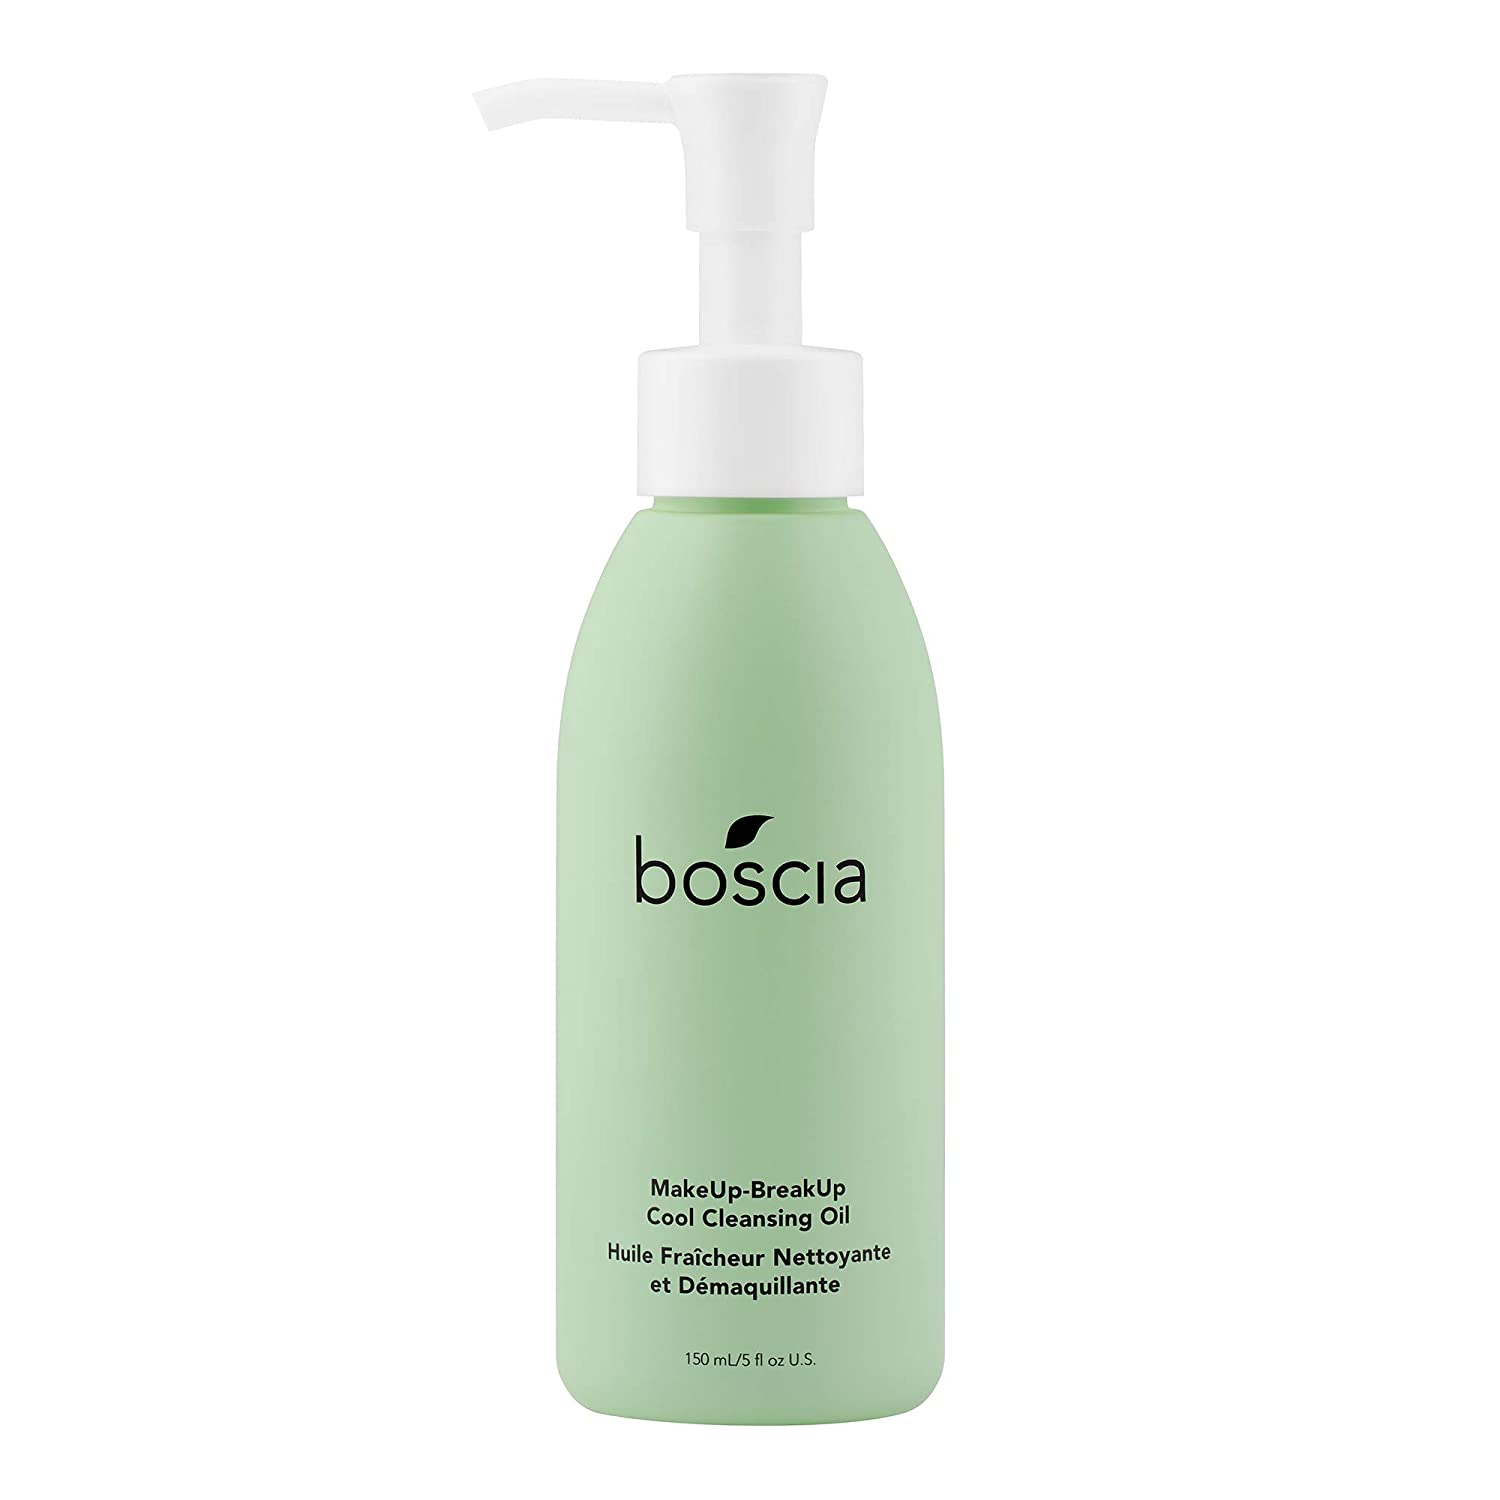 boscia A surprise price is realized MakeUp-BreakUp Cool Cleansing Max 86% OFF Oil Vegan - Cruelty-Free